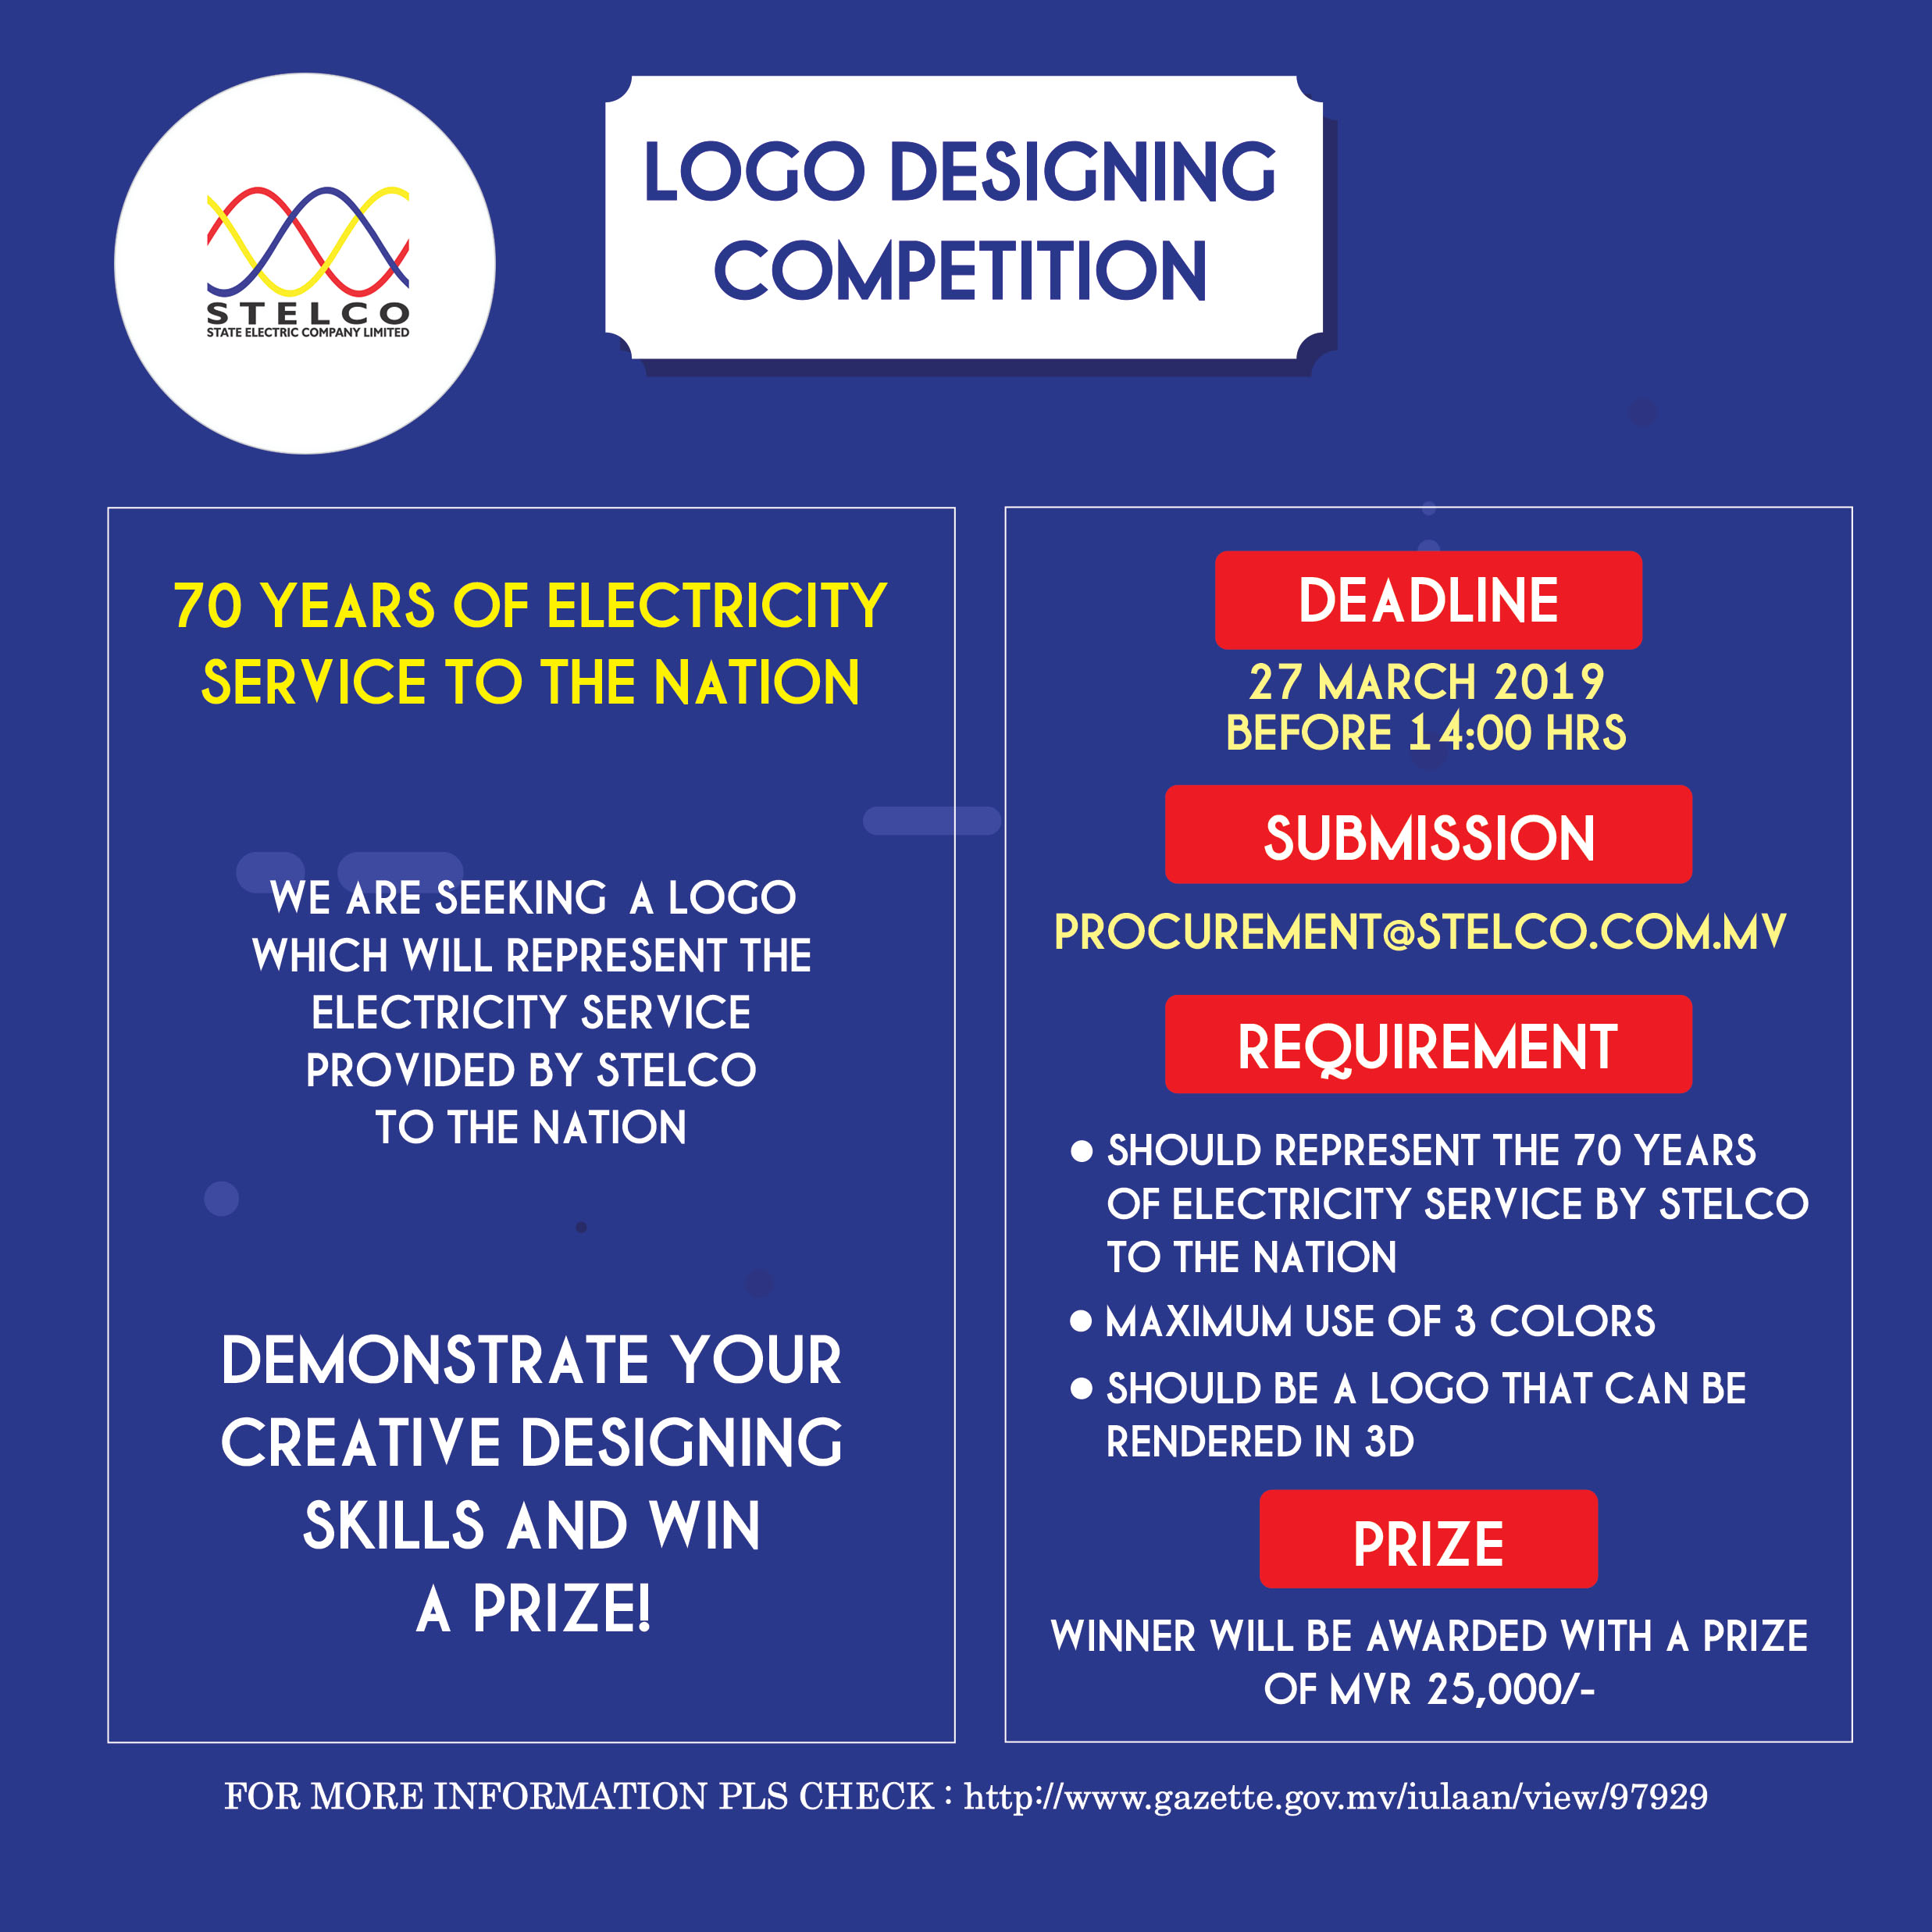 Logo Designing Competition.